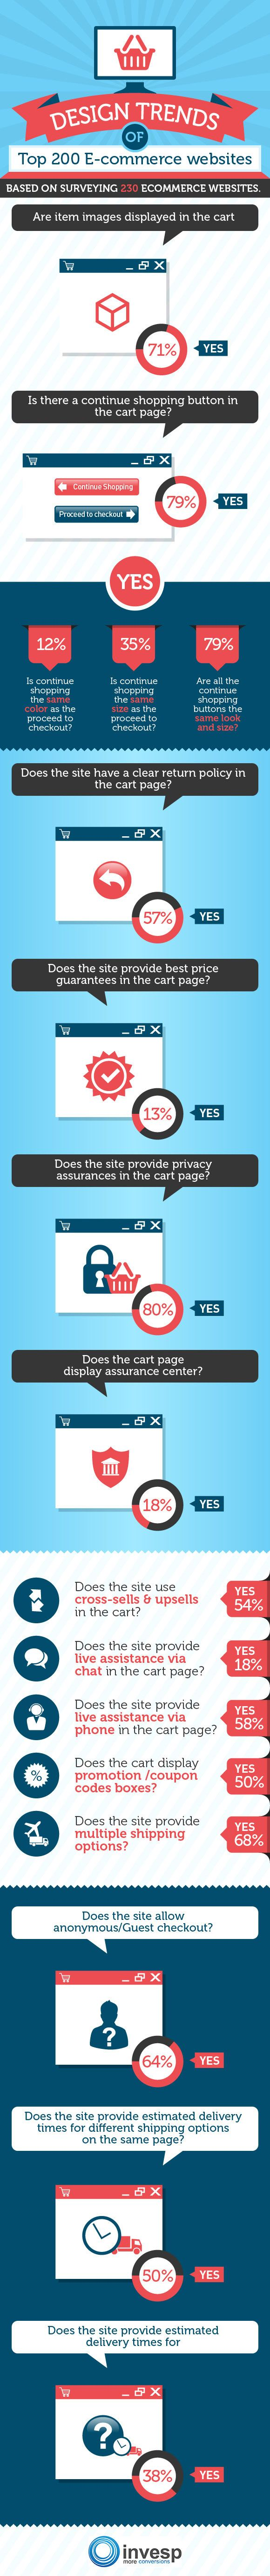 14 Design Trends of Top Ecommerce Checkouts [Infographic]